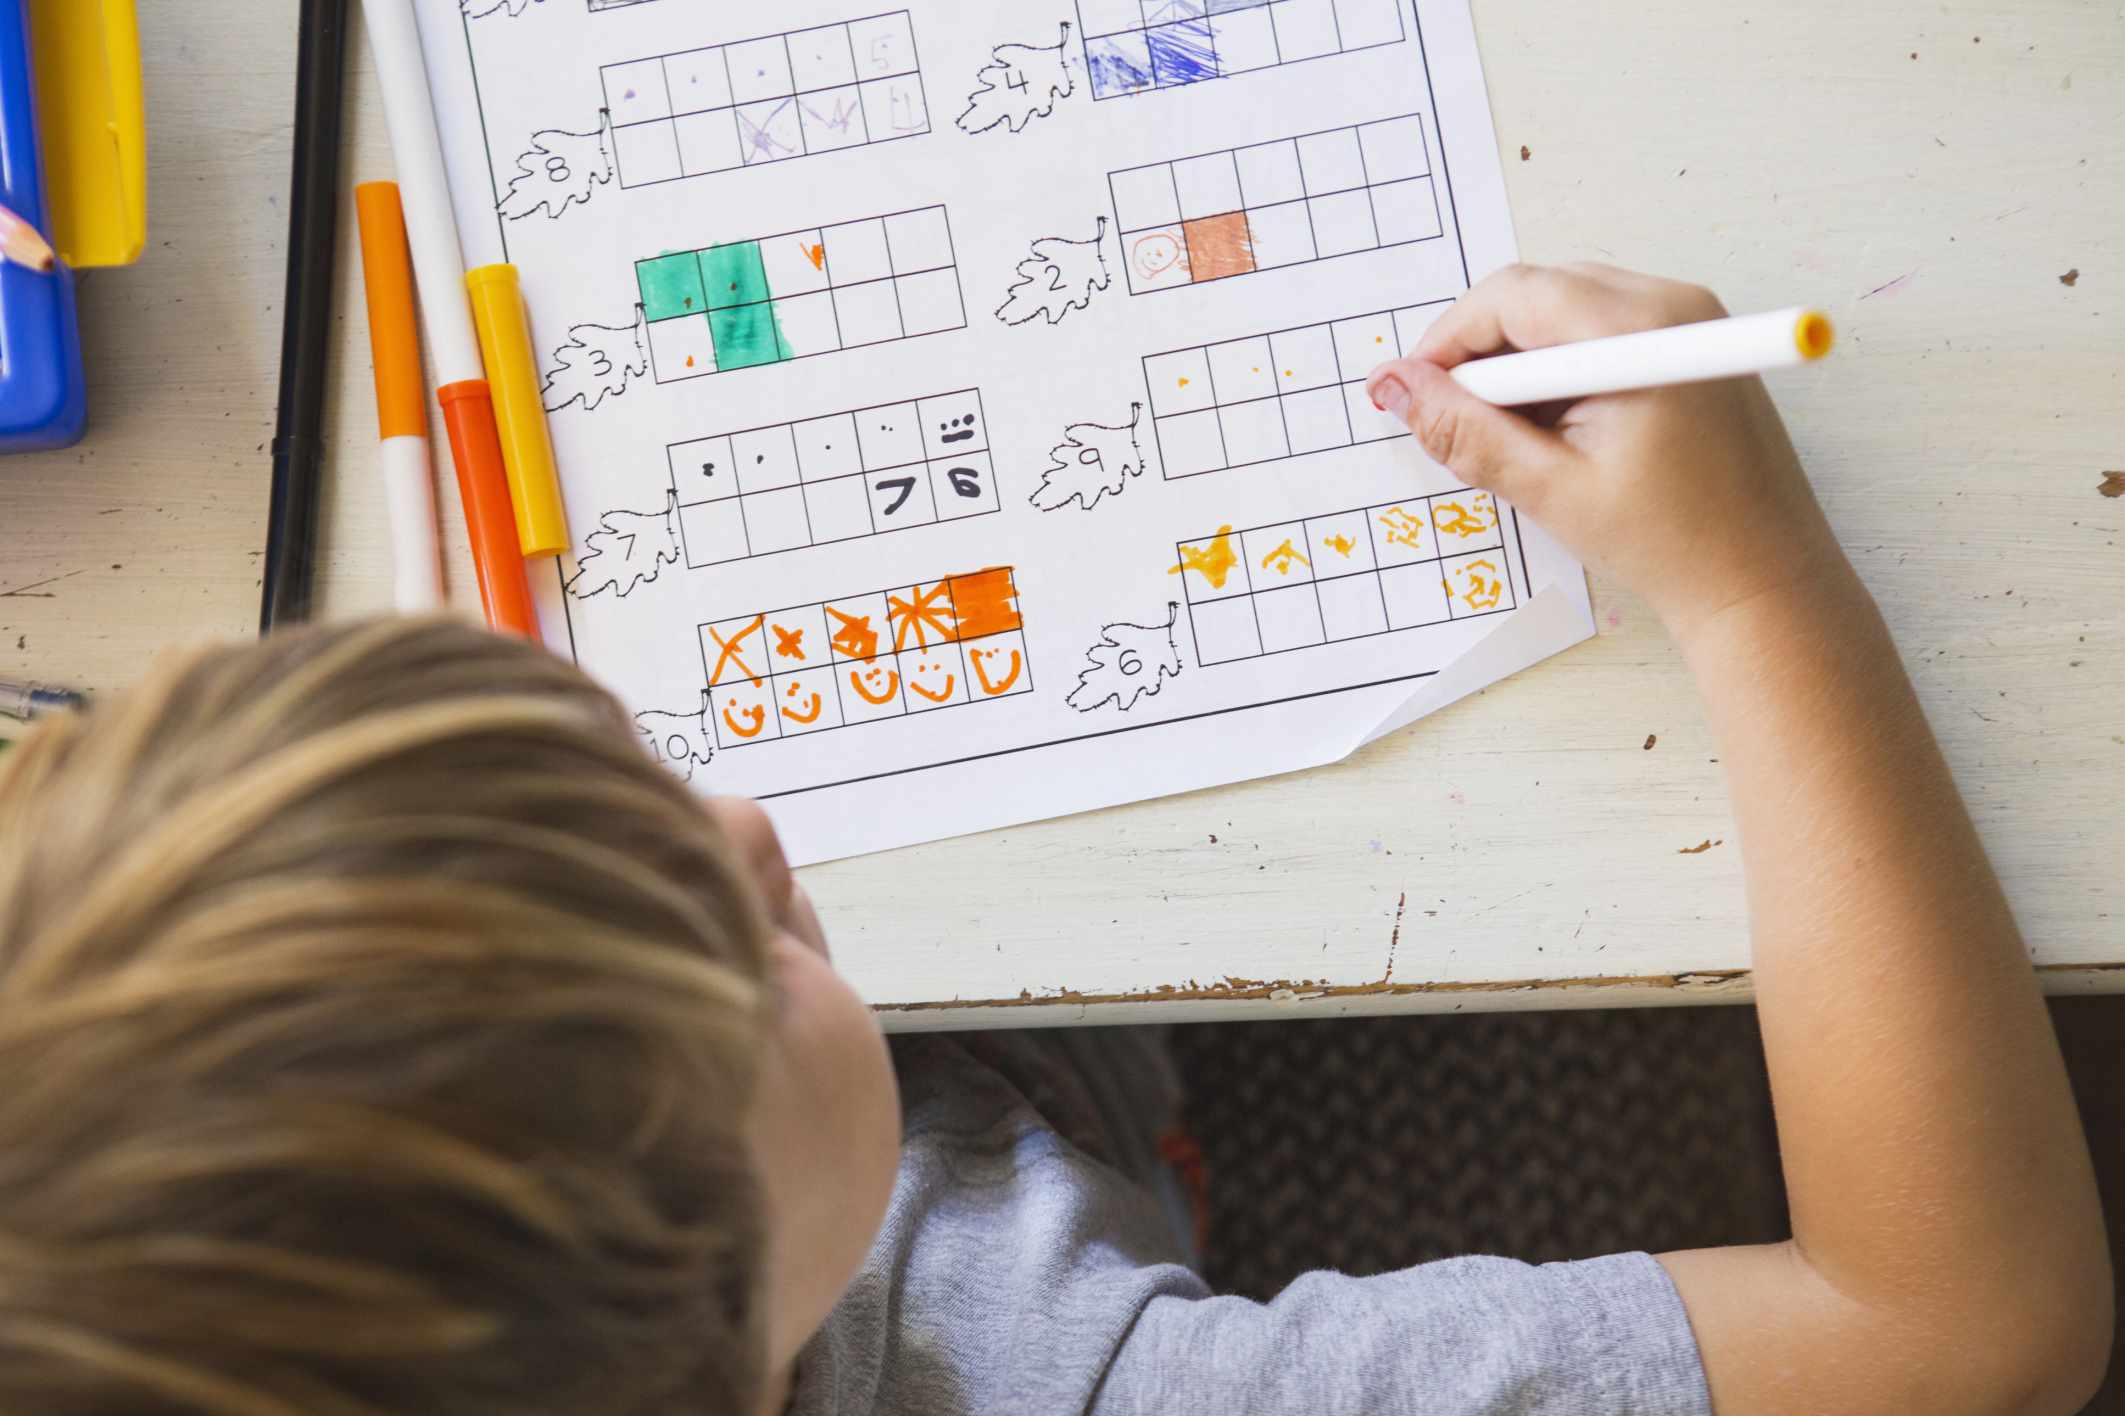 A boy coloring in a math worksheet.